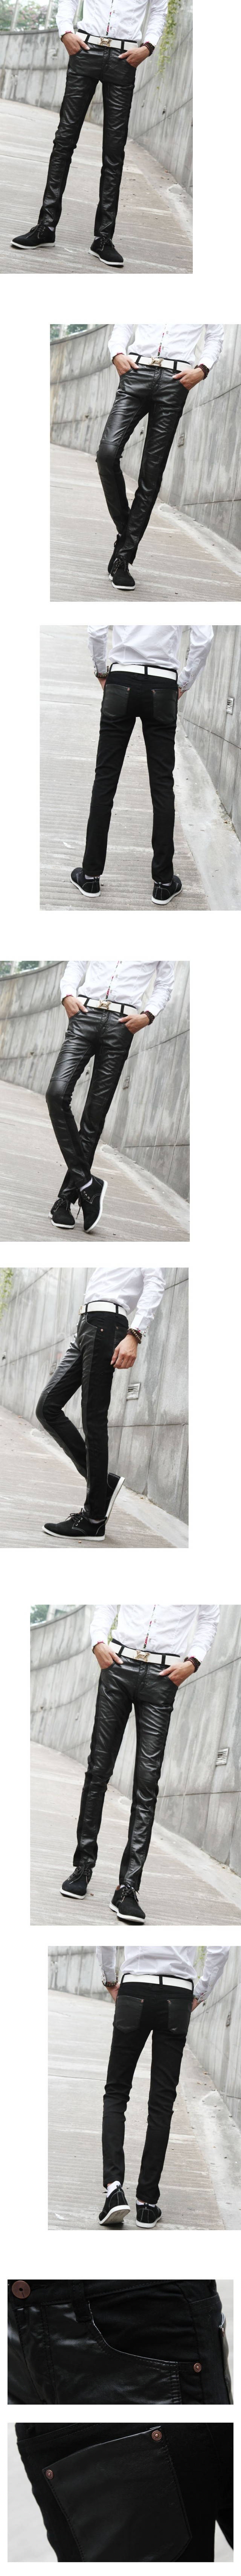 Entong Fashion Slim Casual Breathable Leather & Denim Jointing Men Pants